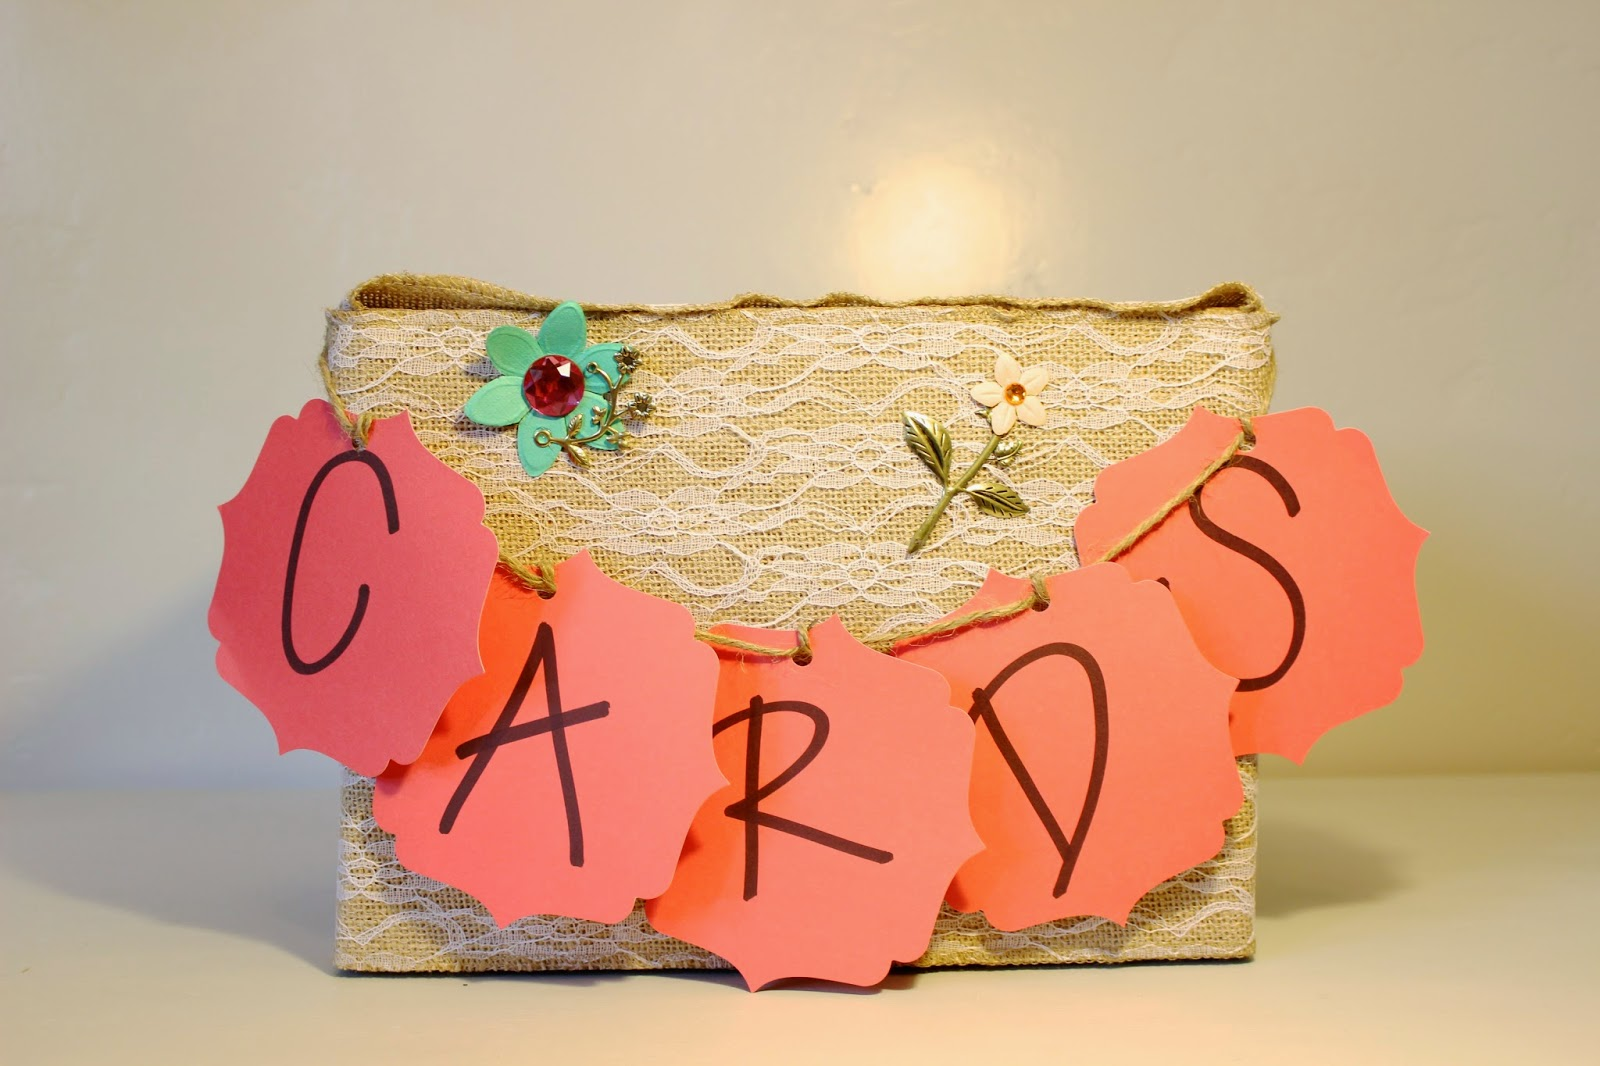 wedding card box, hand made card box, rustic wedding card box, country wedding card box, shabby chic card box, card holder, reception card holder, wedding card holder, lace and burlap card box, coral and gold and turquoise card box